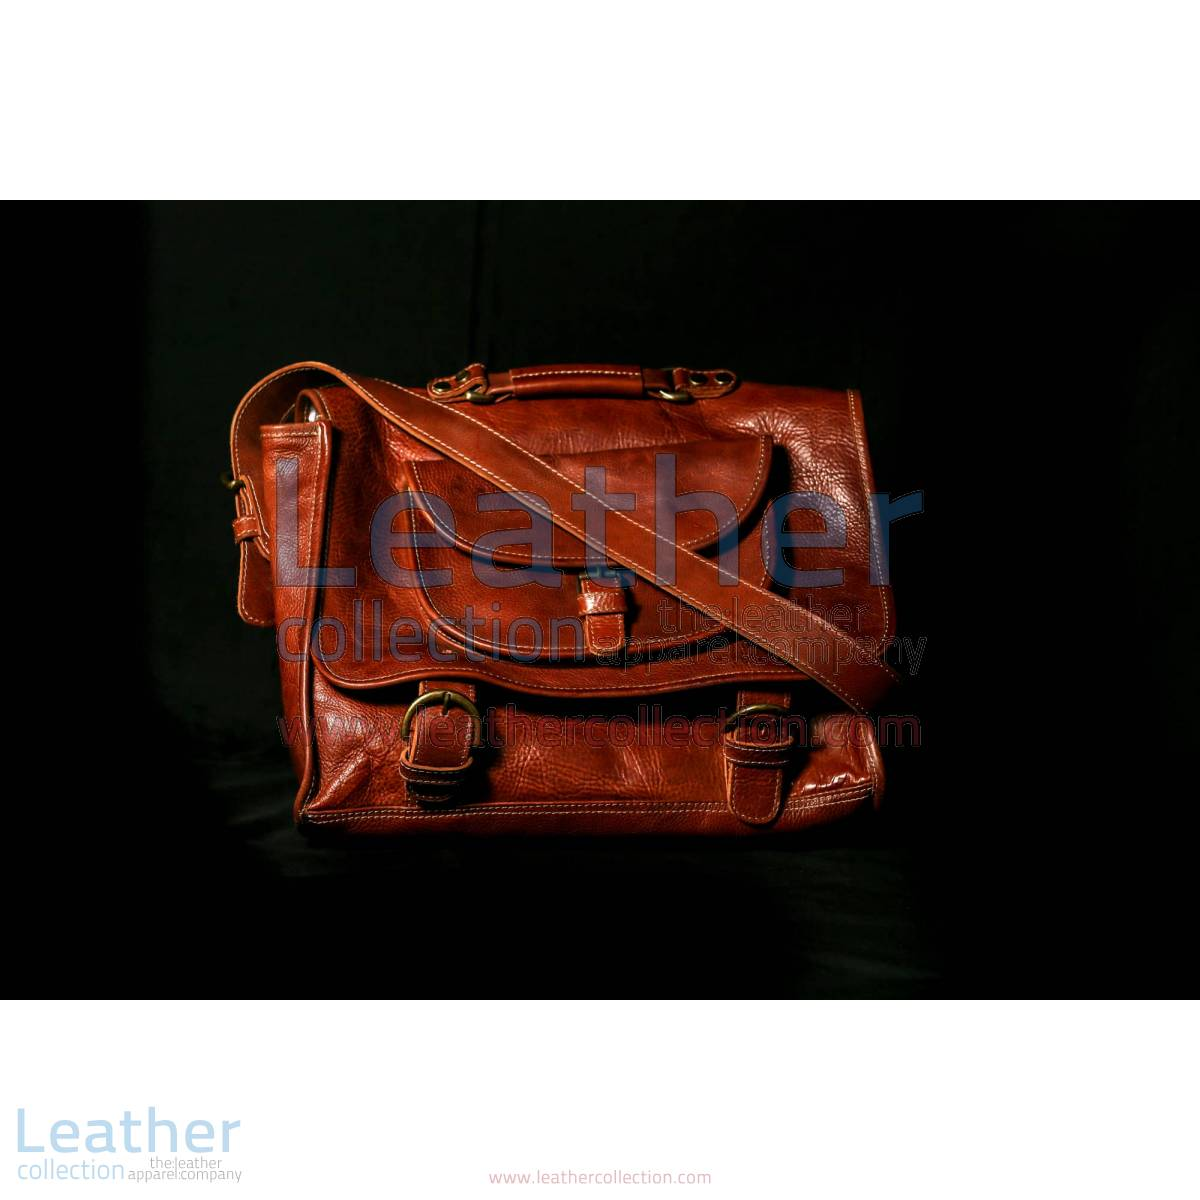 Leather Tour Bag | leather bag